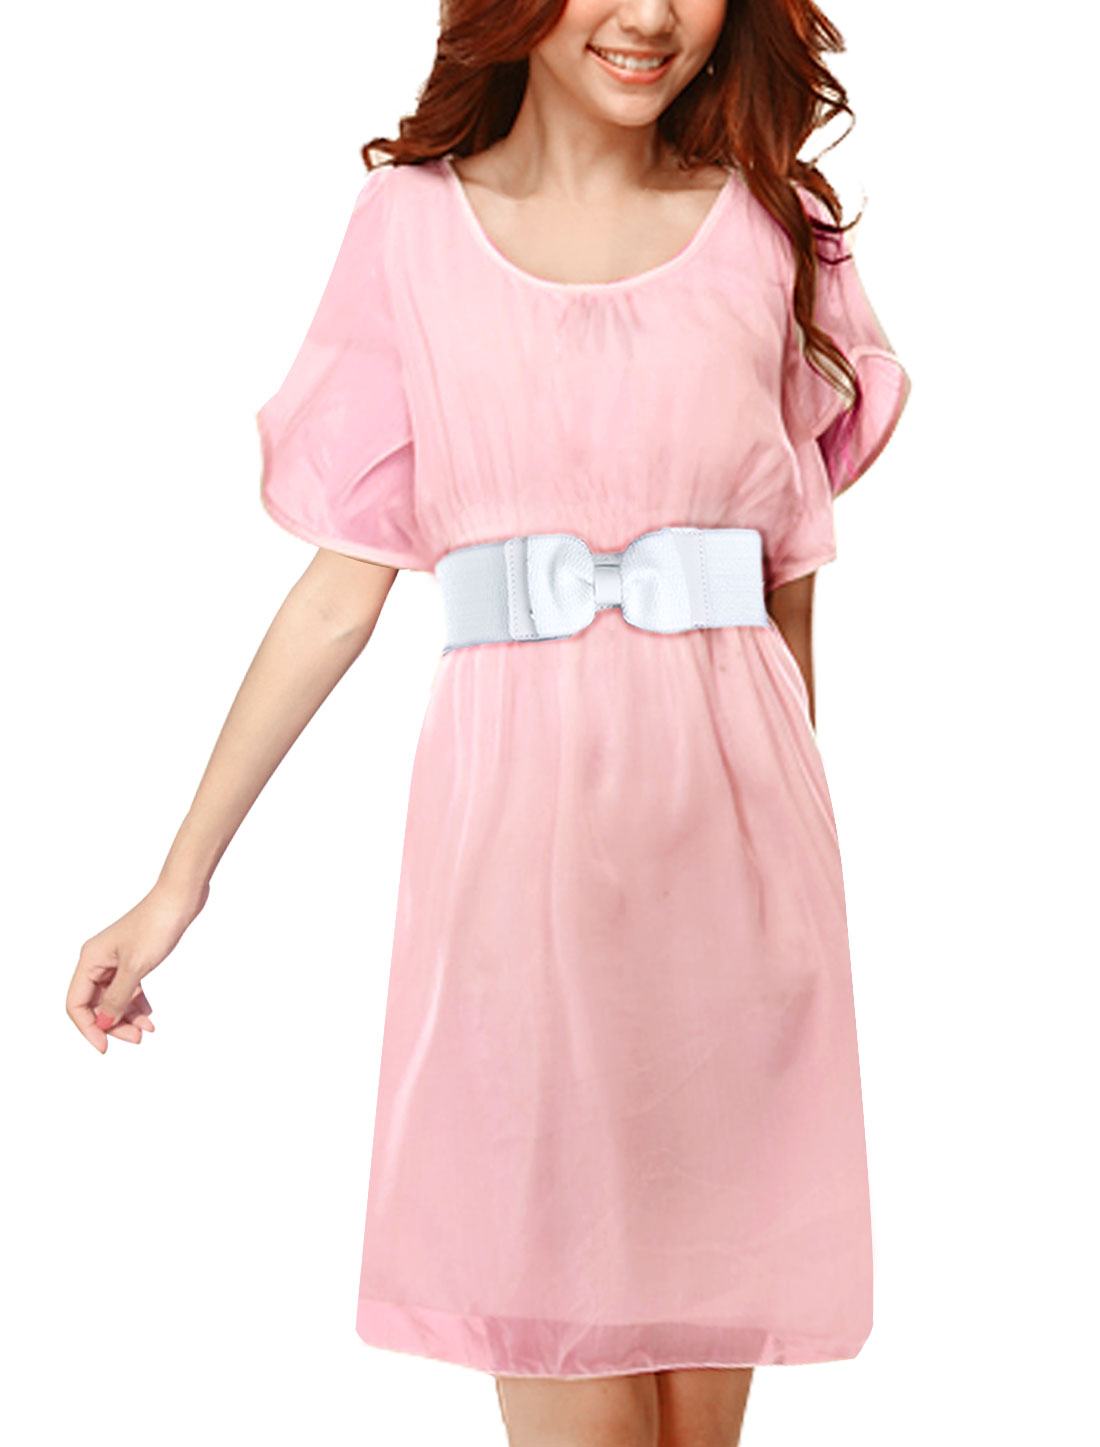 Ladies Scoop Neck Short Ruffled Sleeve Pure Pink Above Knee Dress w Belt S